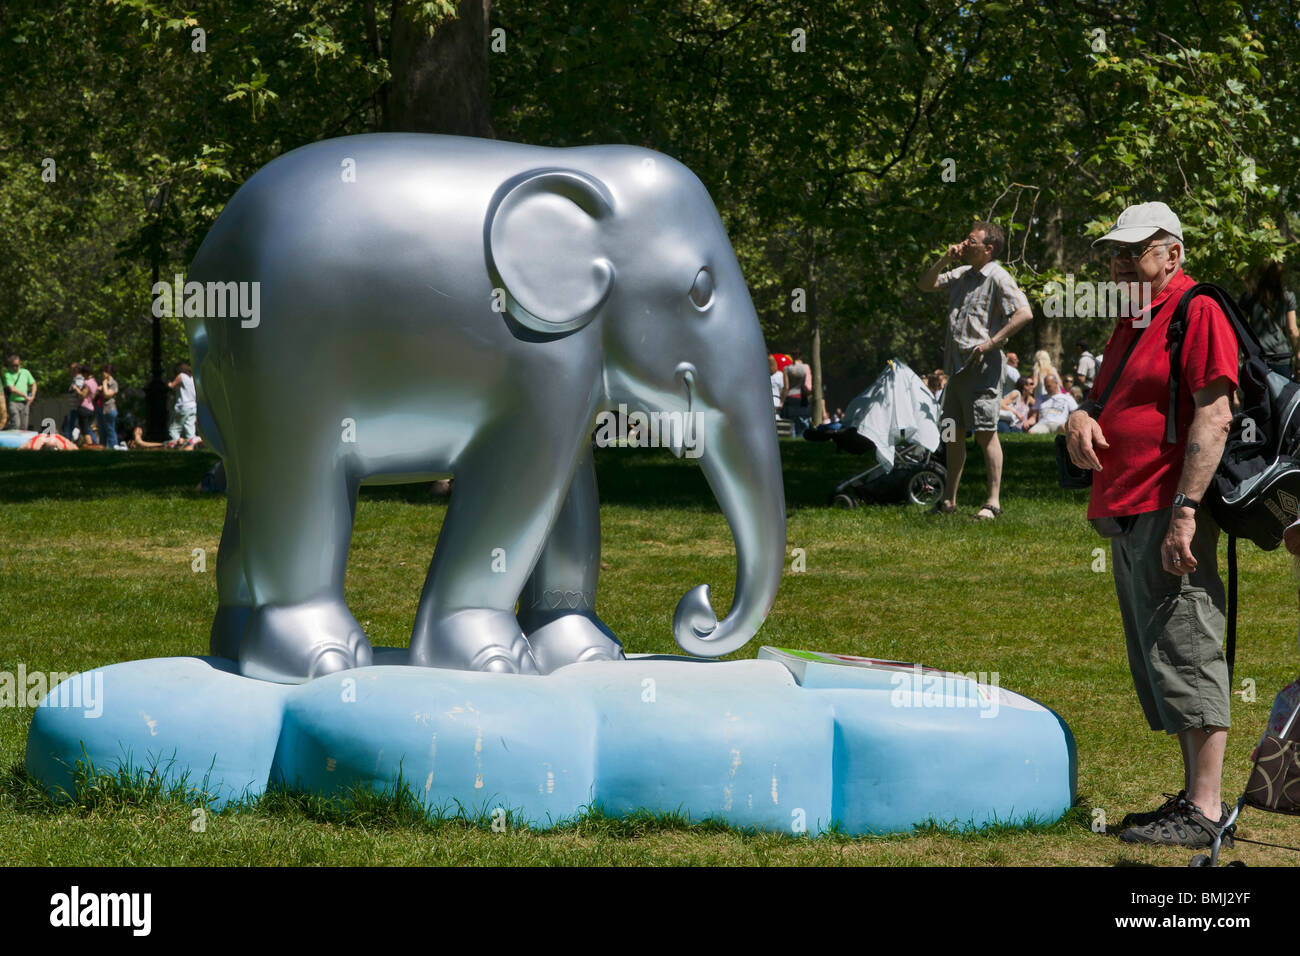 Painted baby elephants, London, summer 2010. In a campaign to protect the Asian elephant, 250 fiberglass life-sized - Stock Image